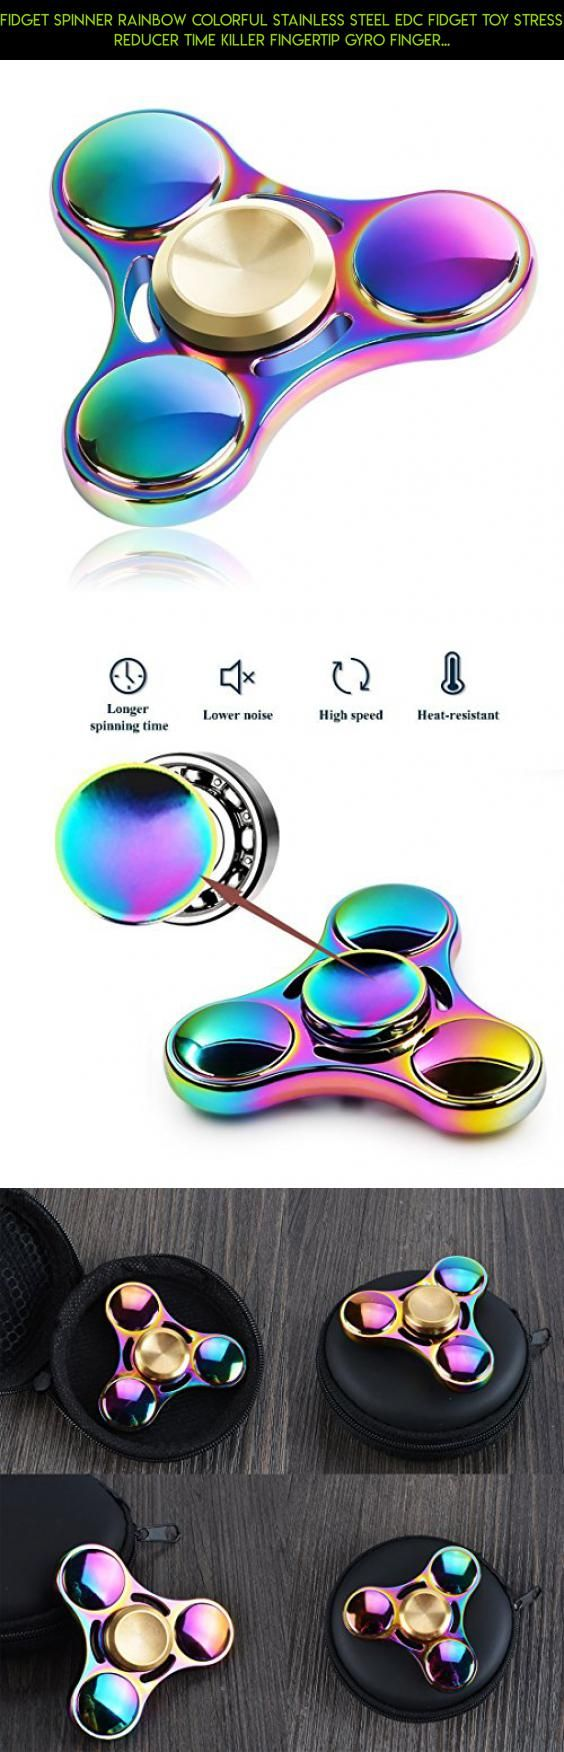 Fidget Spinner Rainbow Colorful Stainless Steel EDC Fidget Toy Stress Reducer Time Killer Fingertip Gyro Finger Toy for Anxiety, Boredom, Autism Adult Kids #kit #steel #gadgets #tech #shopping #fpv #racing #spinner #parts #camera #drone #technology #products #stainless #rainbow #plans